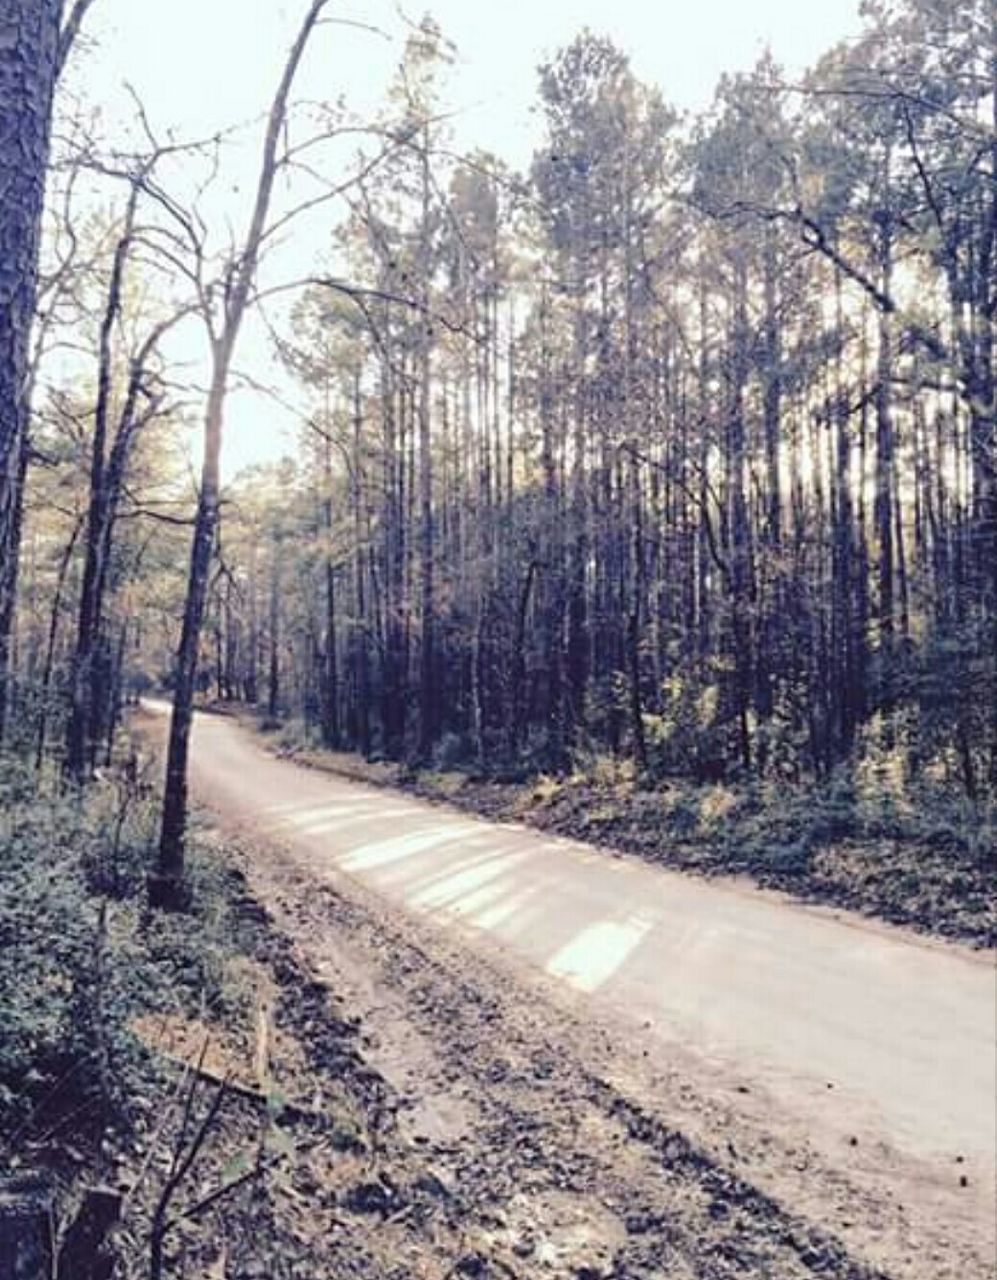 tree, forest, nature, no people, day, outdoors, road, tranquility, tree trunk, scenics, beauty in nature, sky